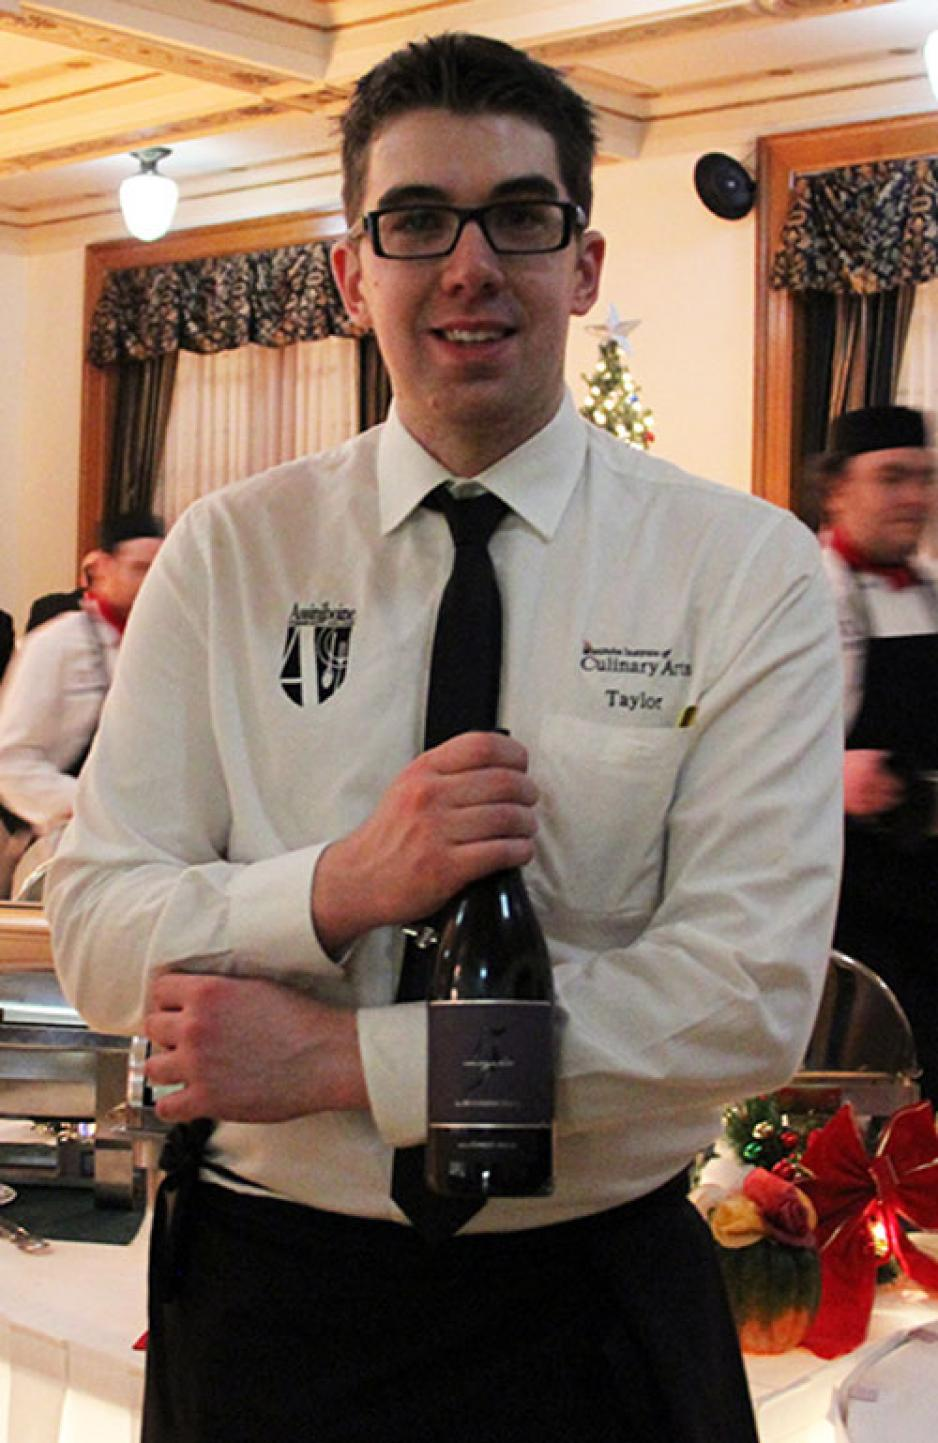 Hotel & Restaurant Management Student stands holding a bottle of wine.